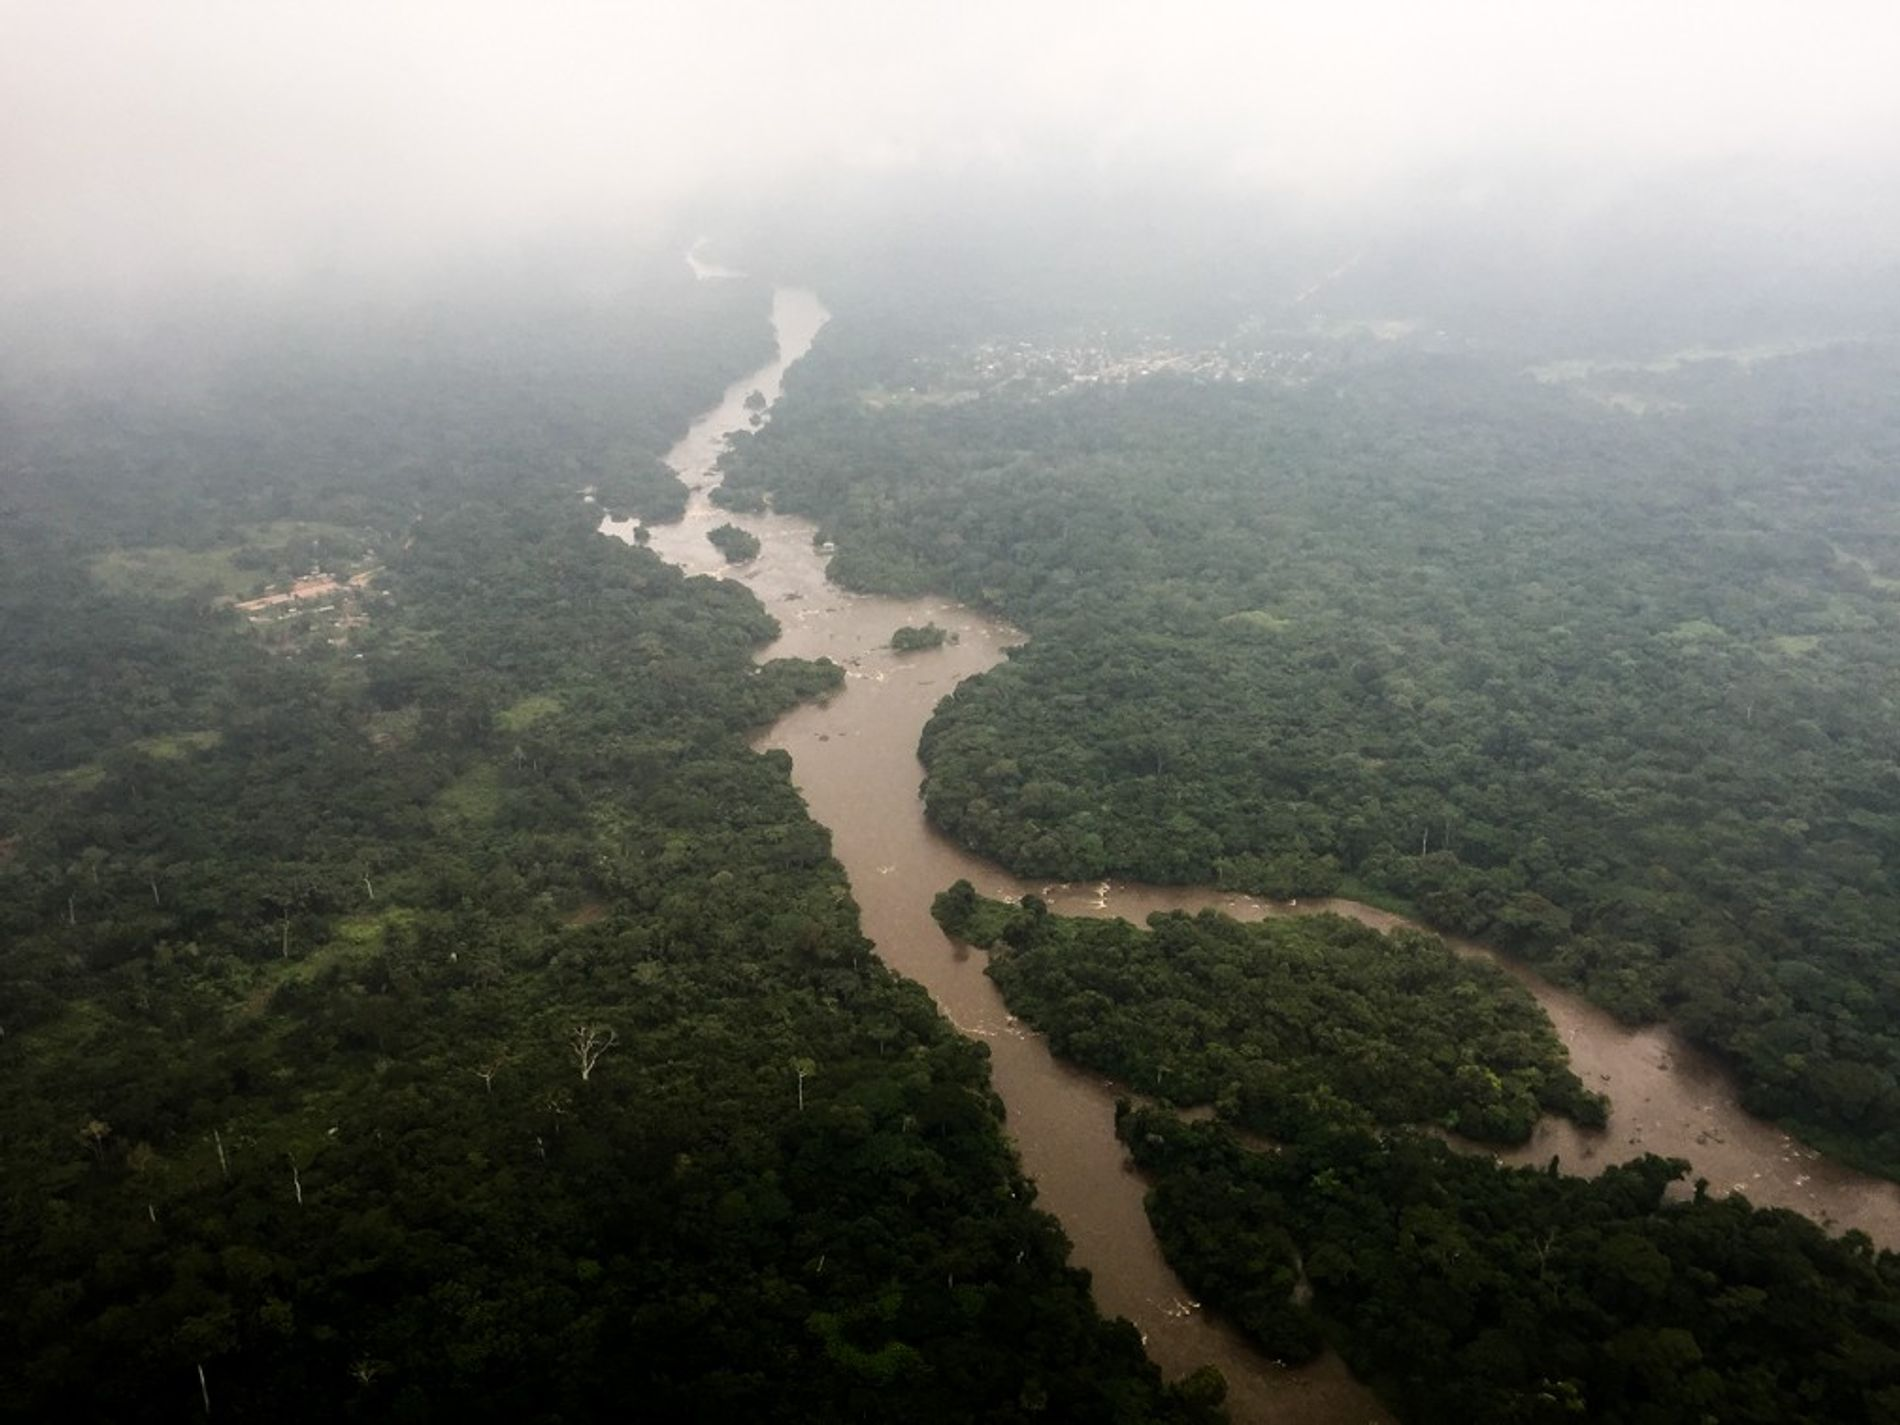 The Epulu River flows through the Okapi Wildlife Reserve, a UNESCO World Heritage site in the conflict-ridden eastern region of the Democratic Republic of the Congo.